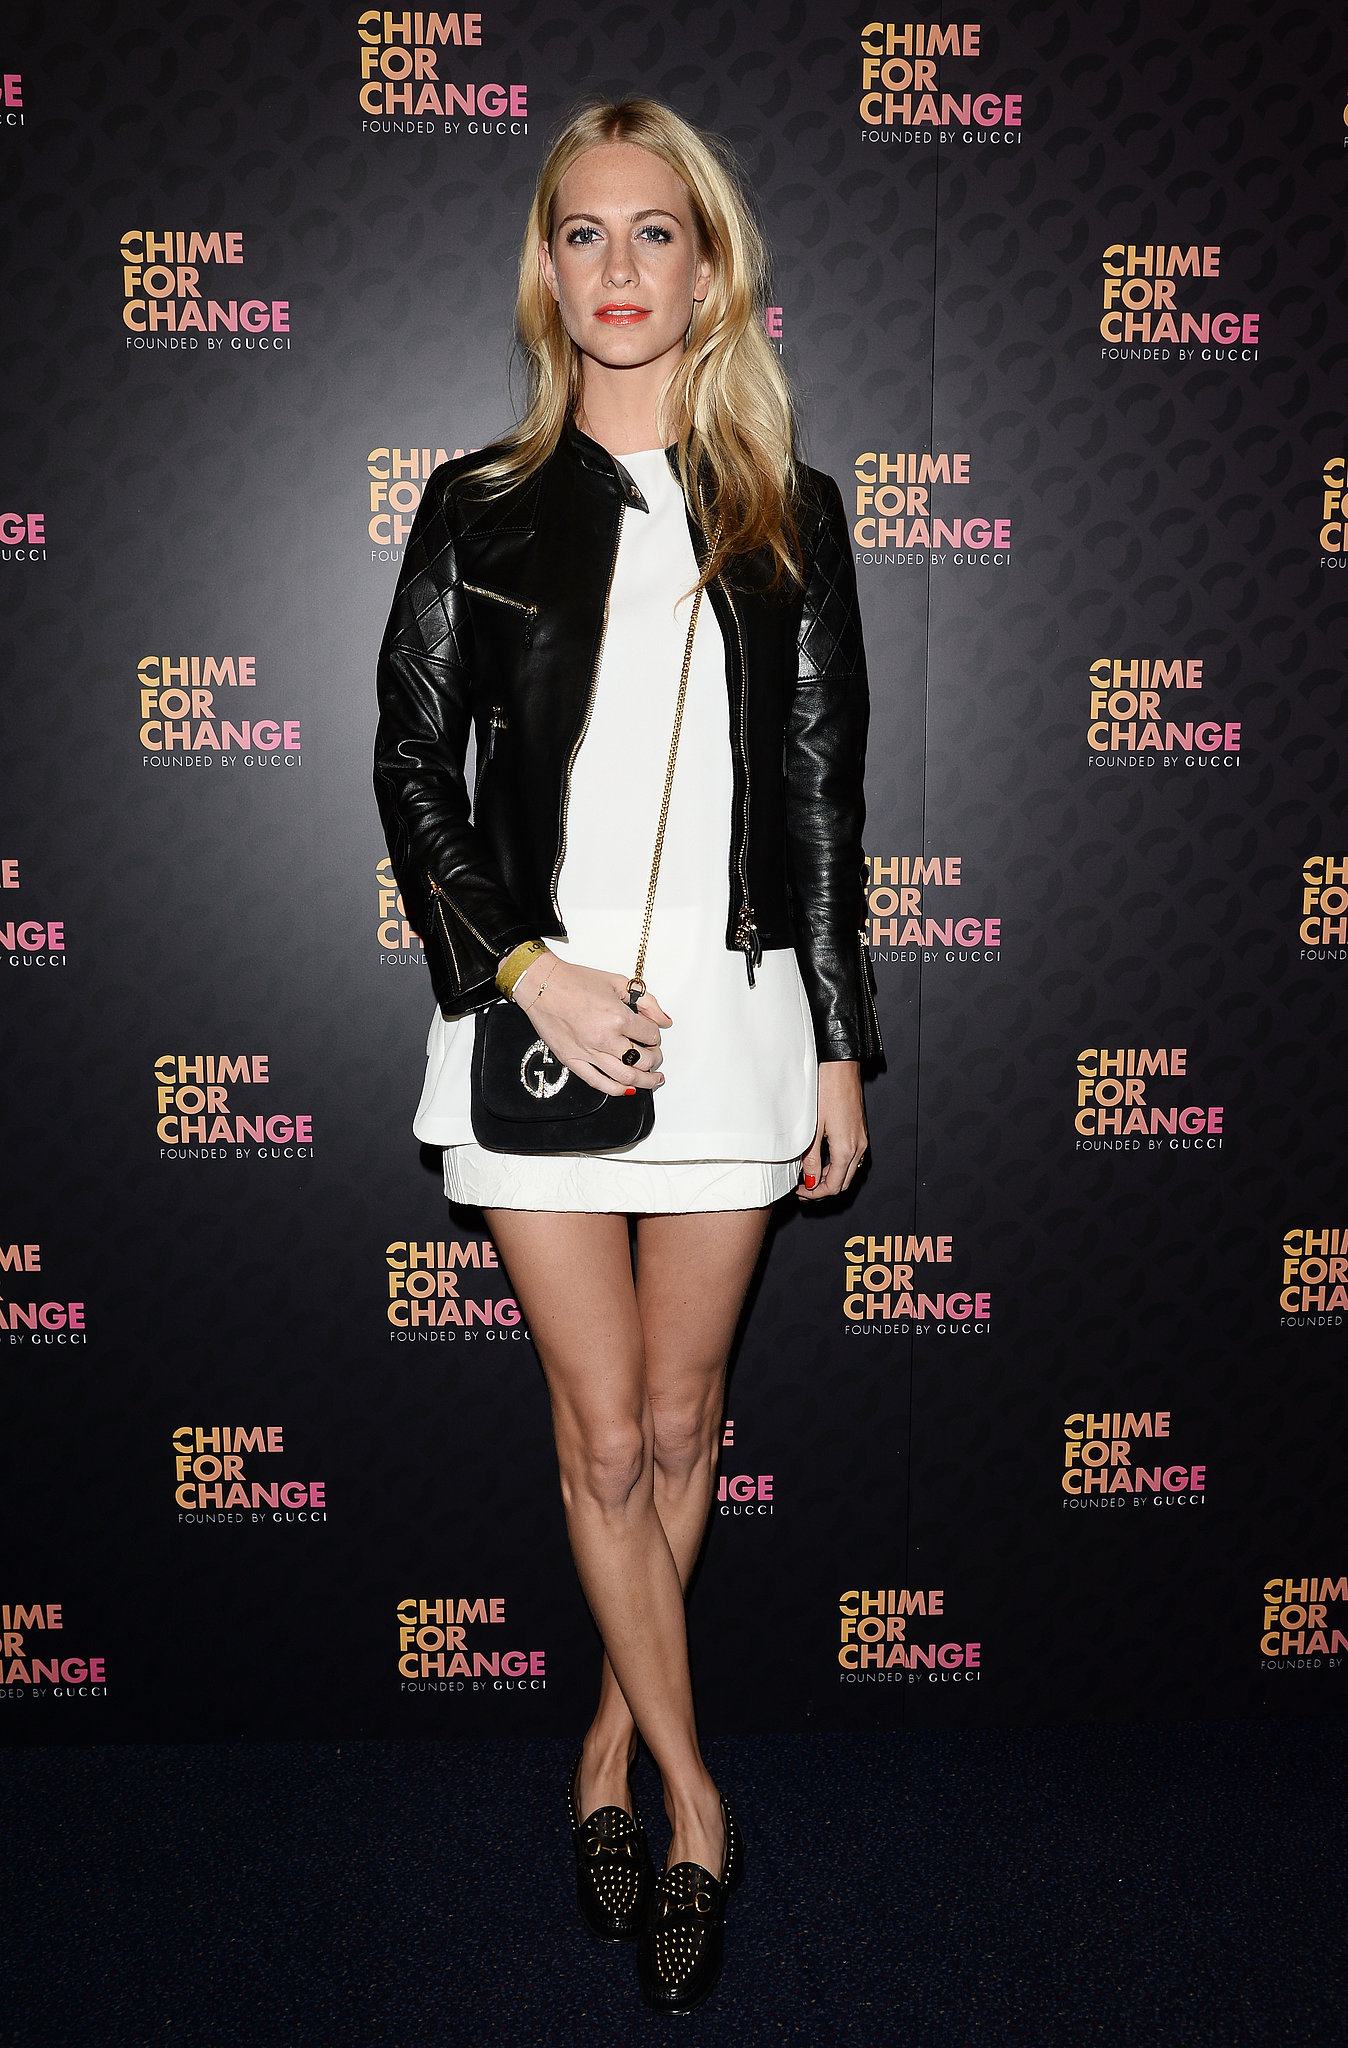 Poppy Delevingne at the Chime For Change: The Sound of Change Live concert, presented by Gucci, in London.